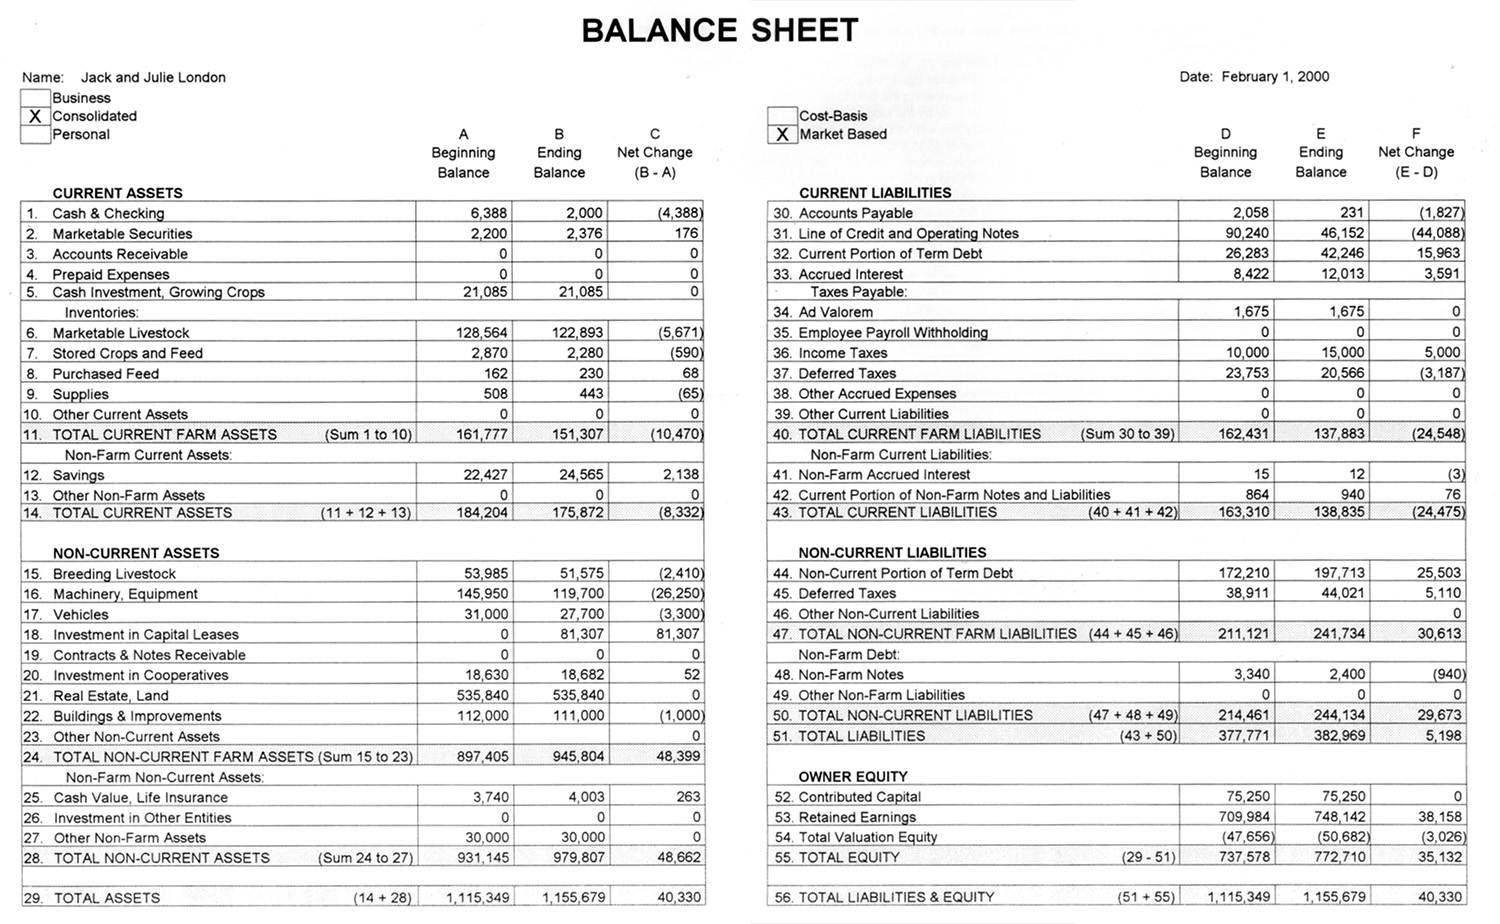 case balance sheet and personal financial information In financial accounting, a balance sheet or statement of financial position is a summary of the financial balances of an individual or organization, whether it be a sole proprietorship, a business partnership, a corporation, private limited company or other organization such as government or not-for-profit entity.